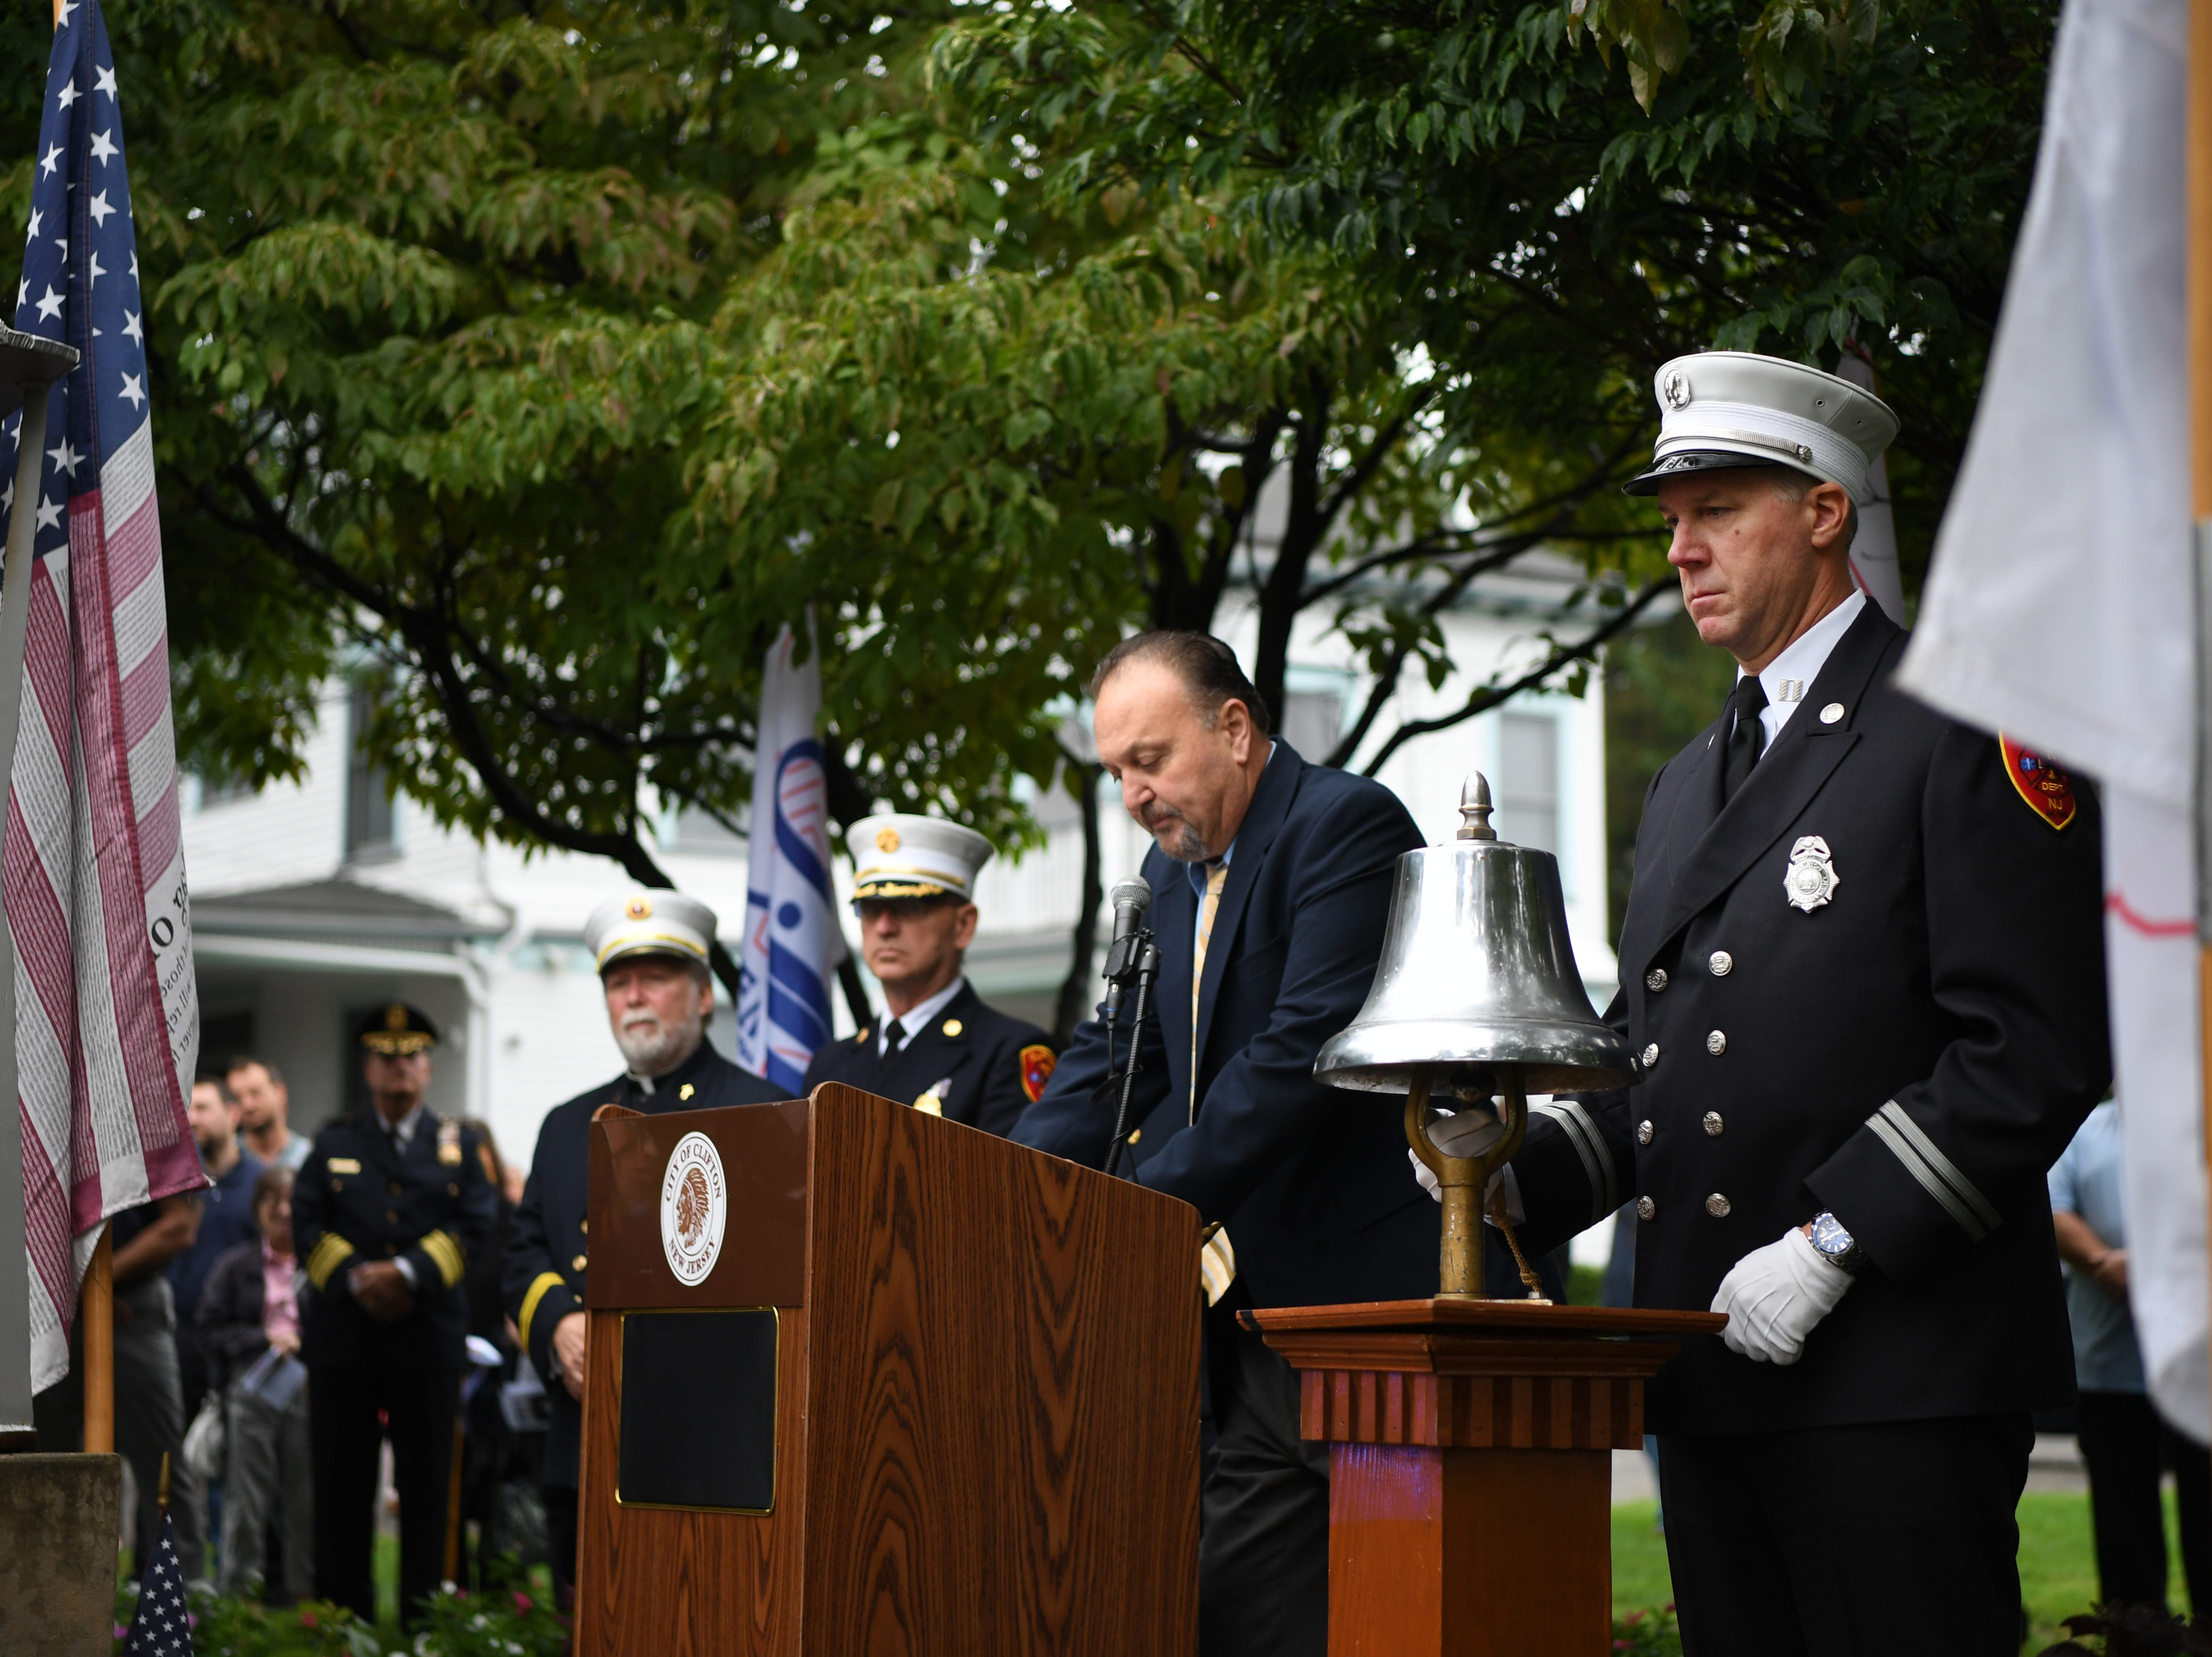 Clifton Fire Captain Daniel Collins rings a bell as the names of Clifton residents lost on 9/11 are read during a 9/11 memorial service at Clifton City Hall on Tuesday, September 11, 2018.